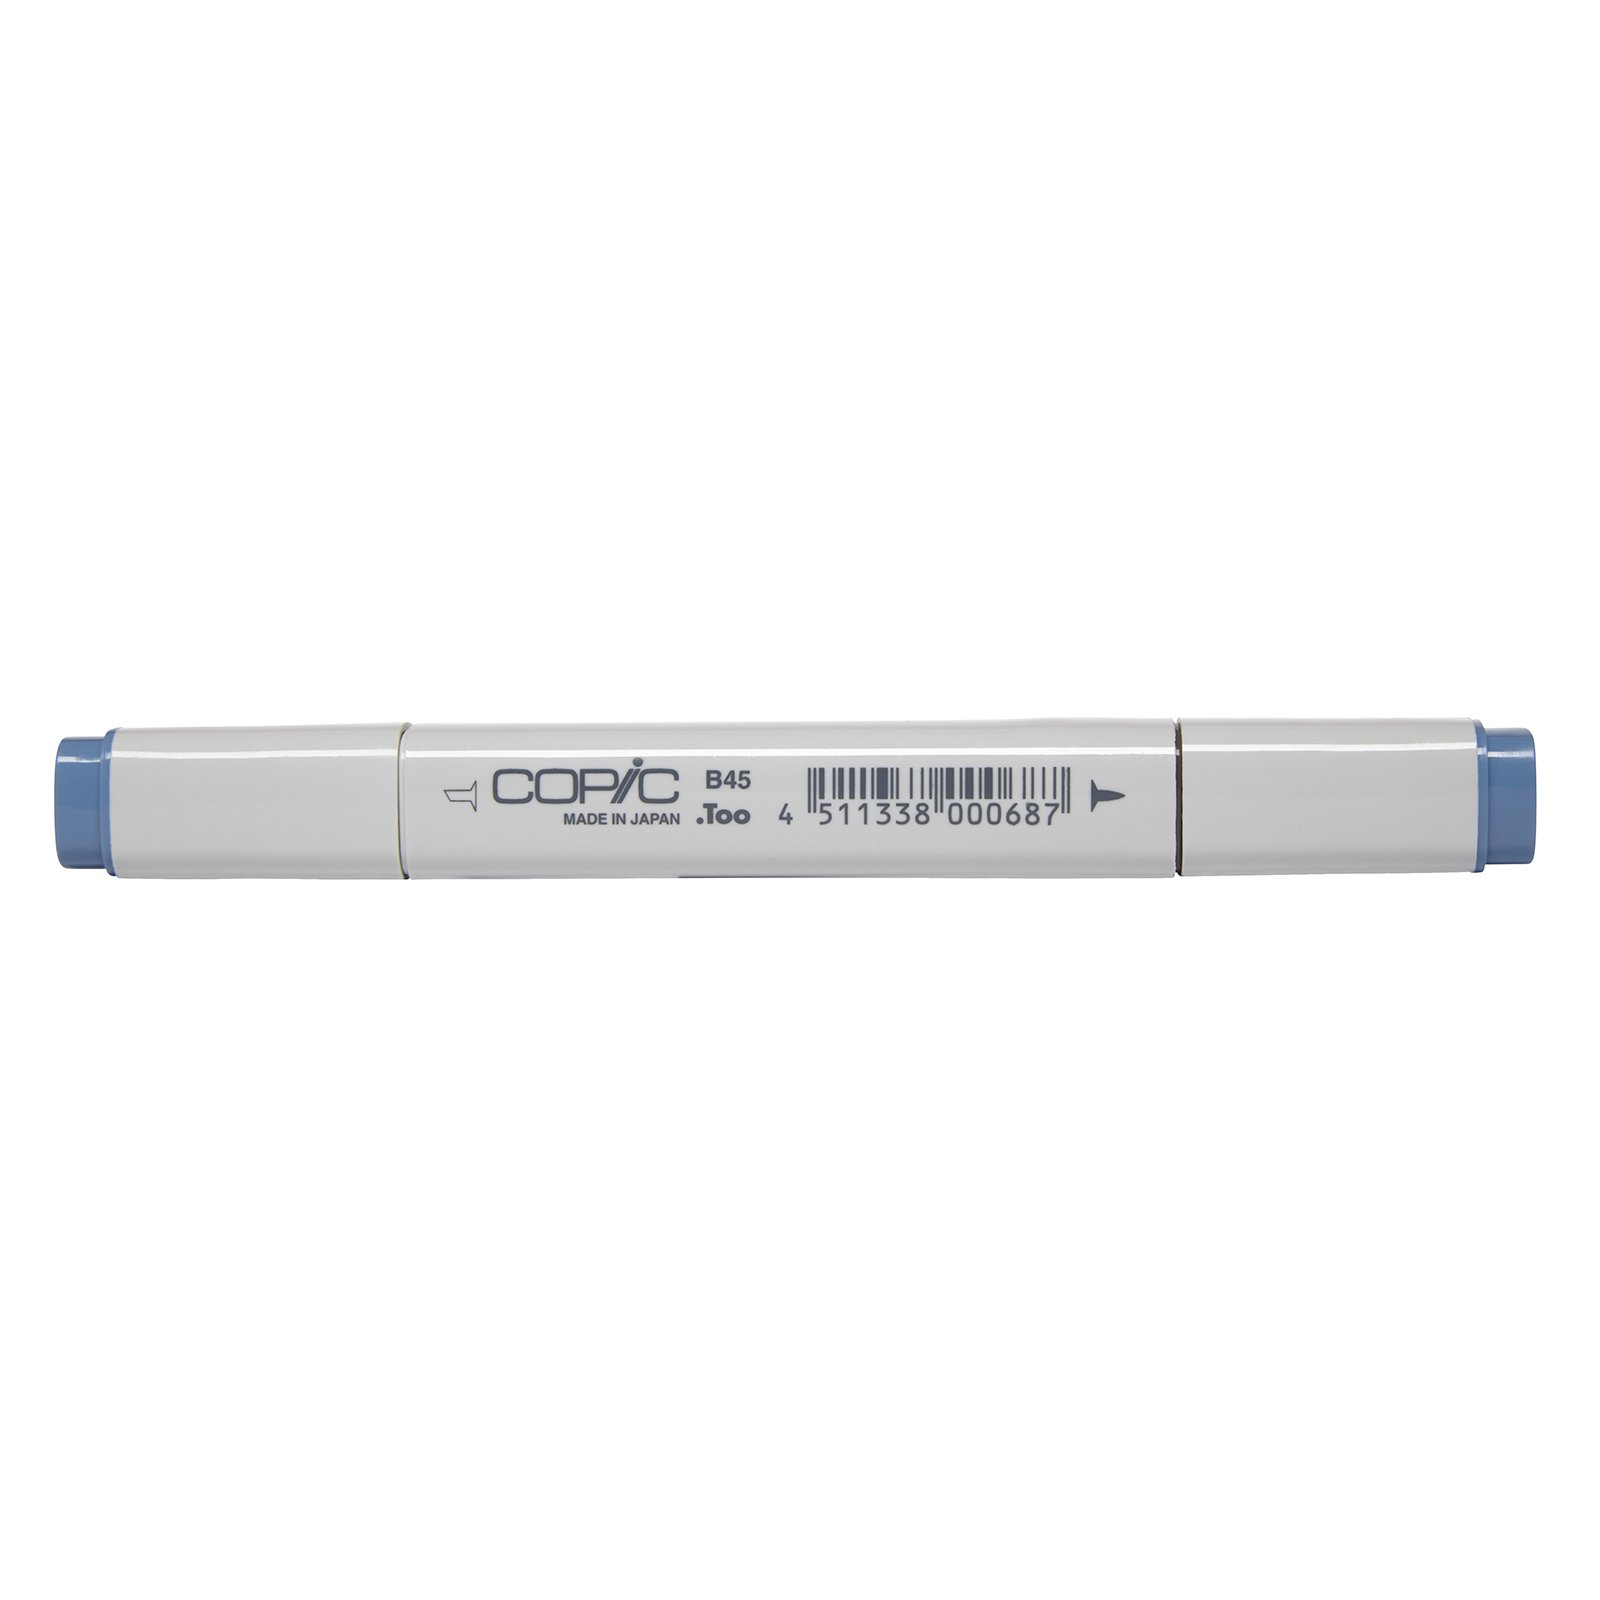 Copic Marker with Replaceable Nib, B45-Copic, Smoky Blue